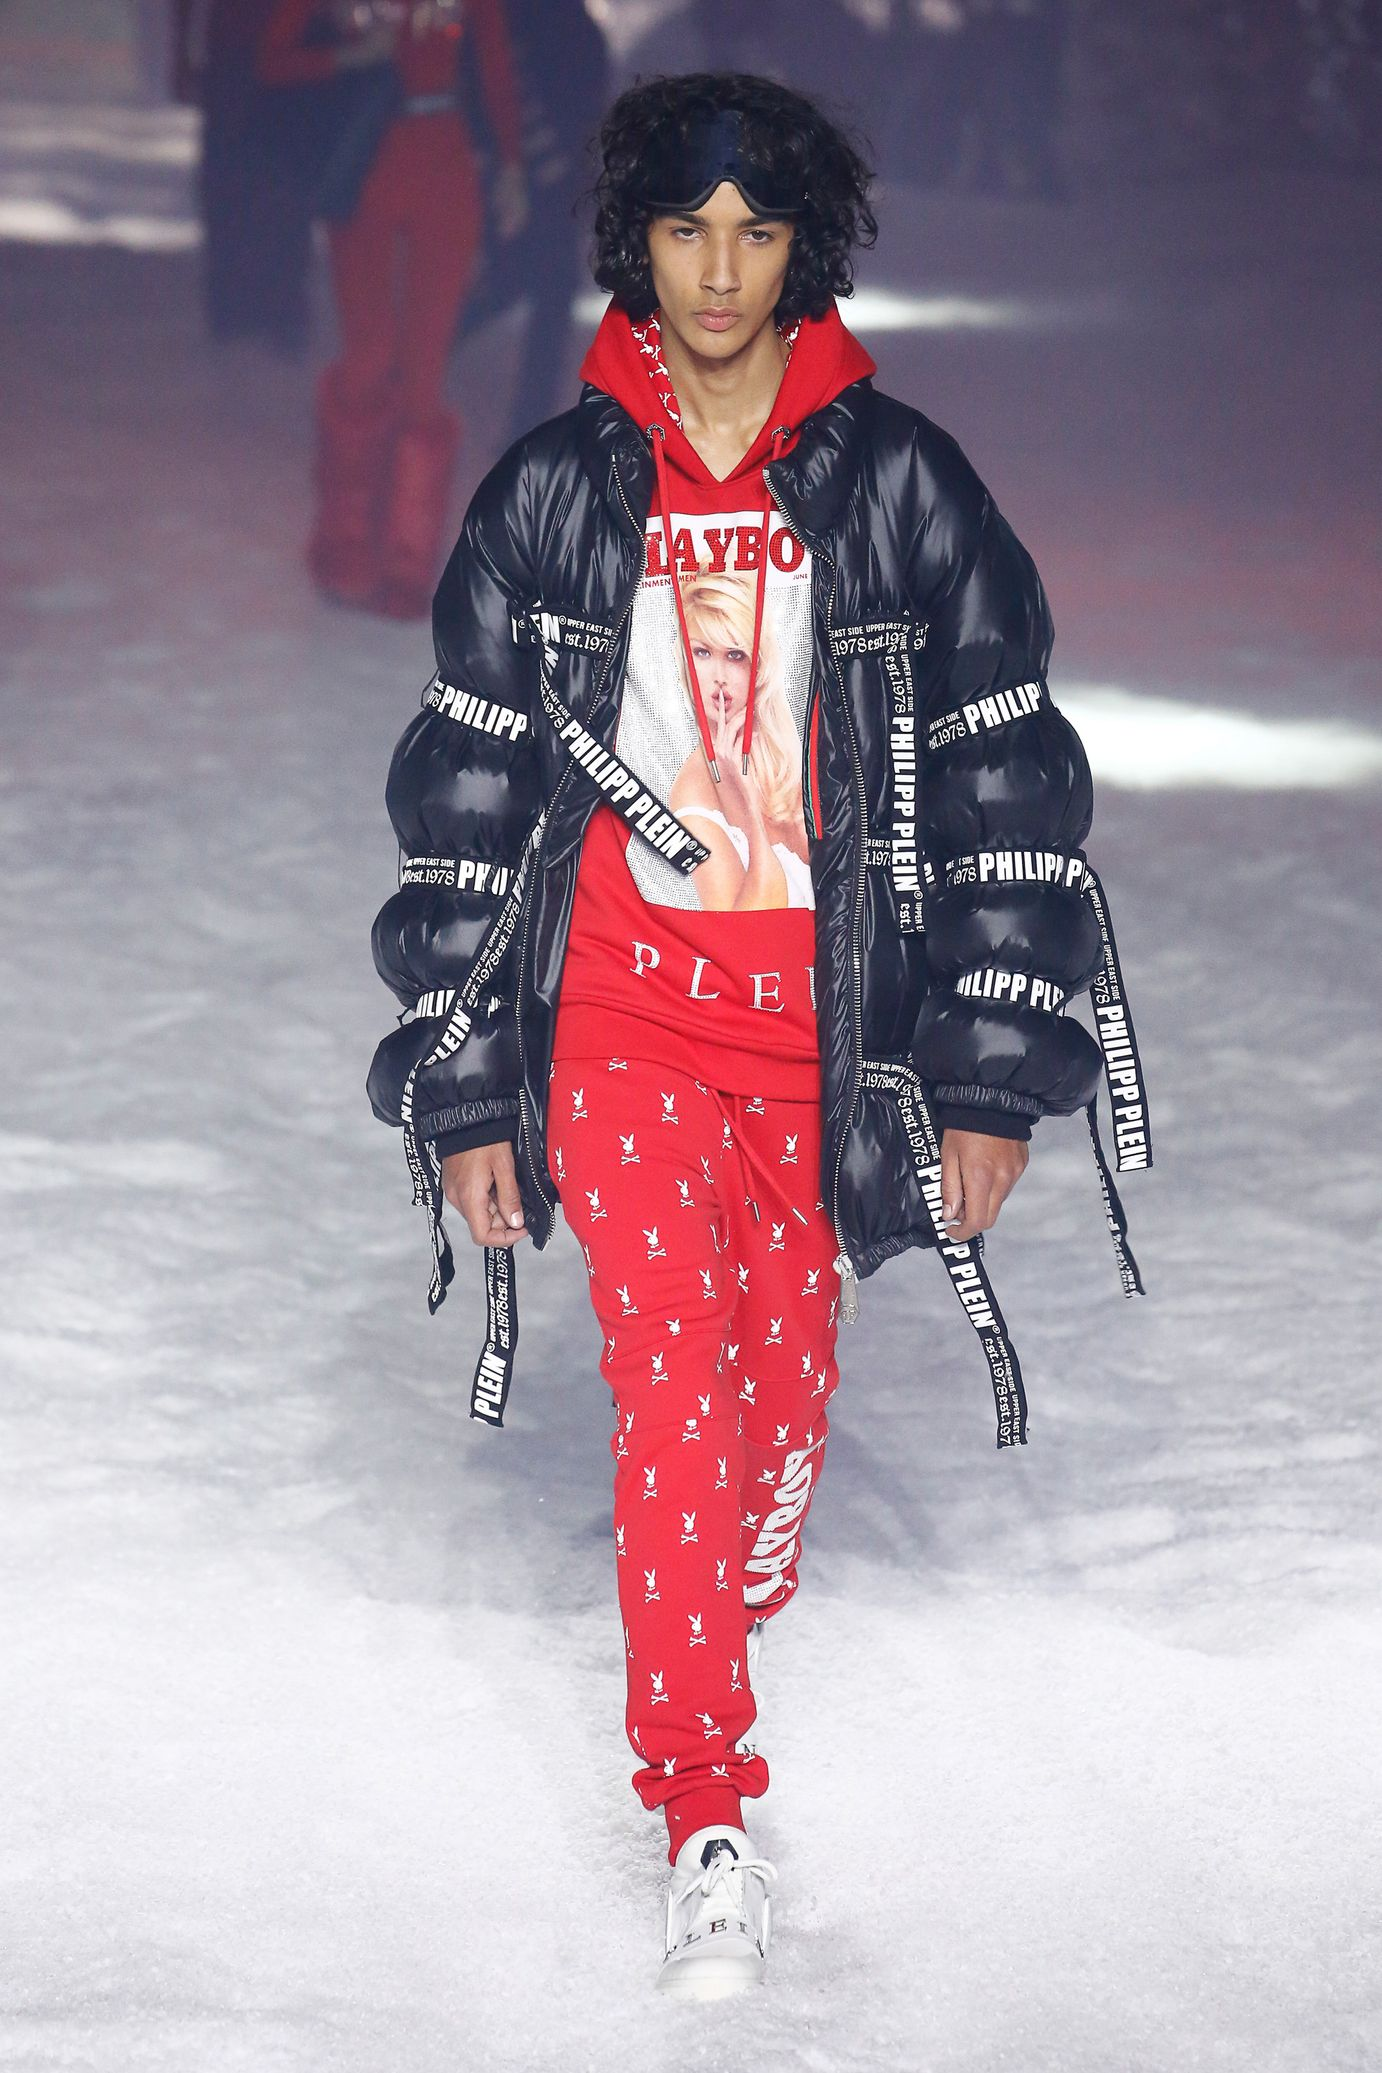 Philipp Plein ReadytoWear Idées de mode, Fashion week